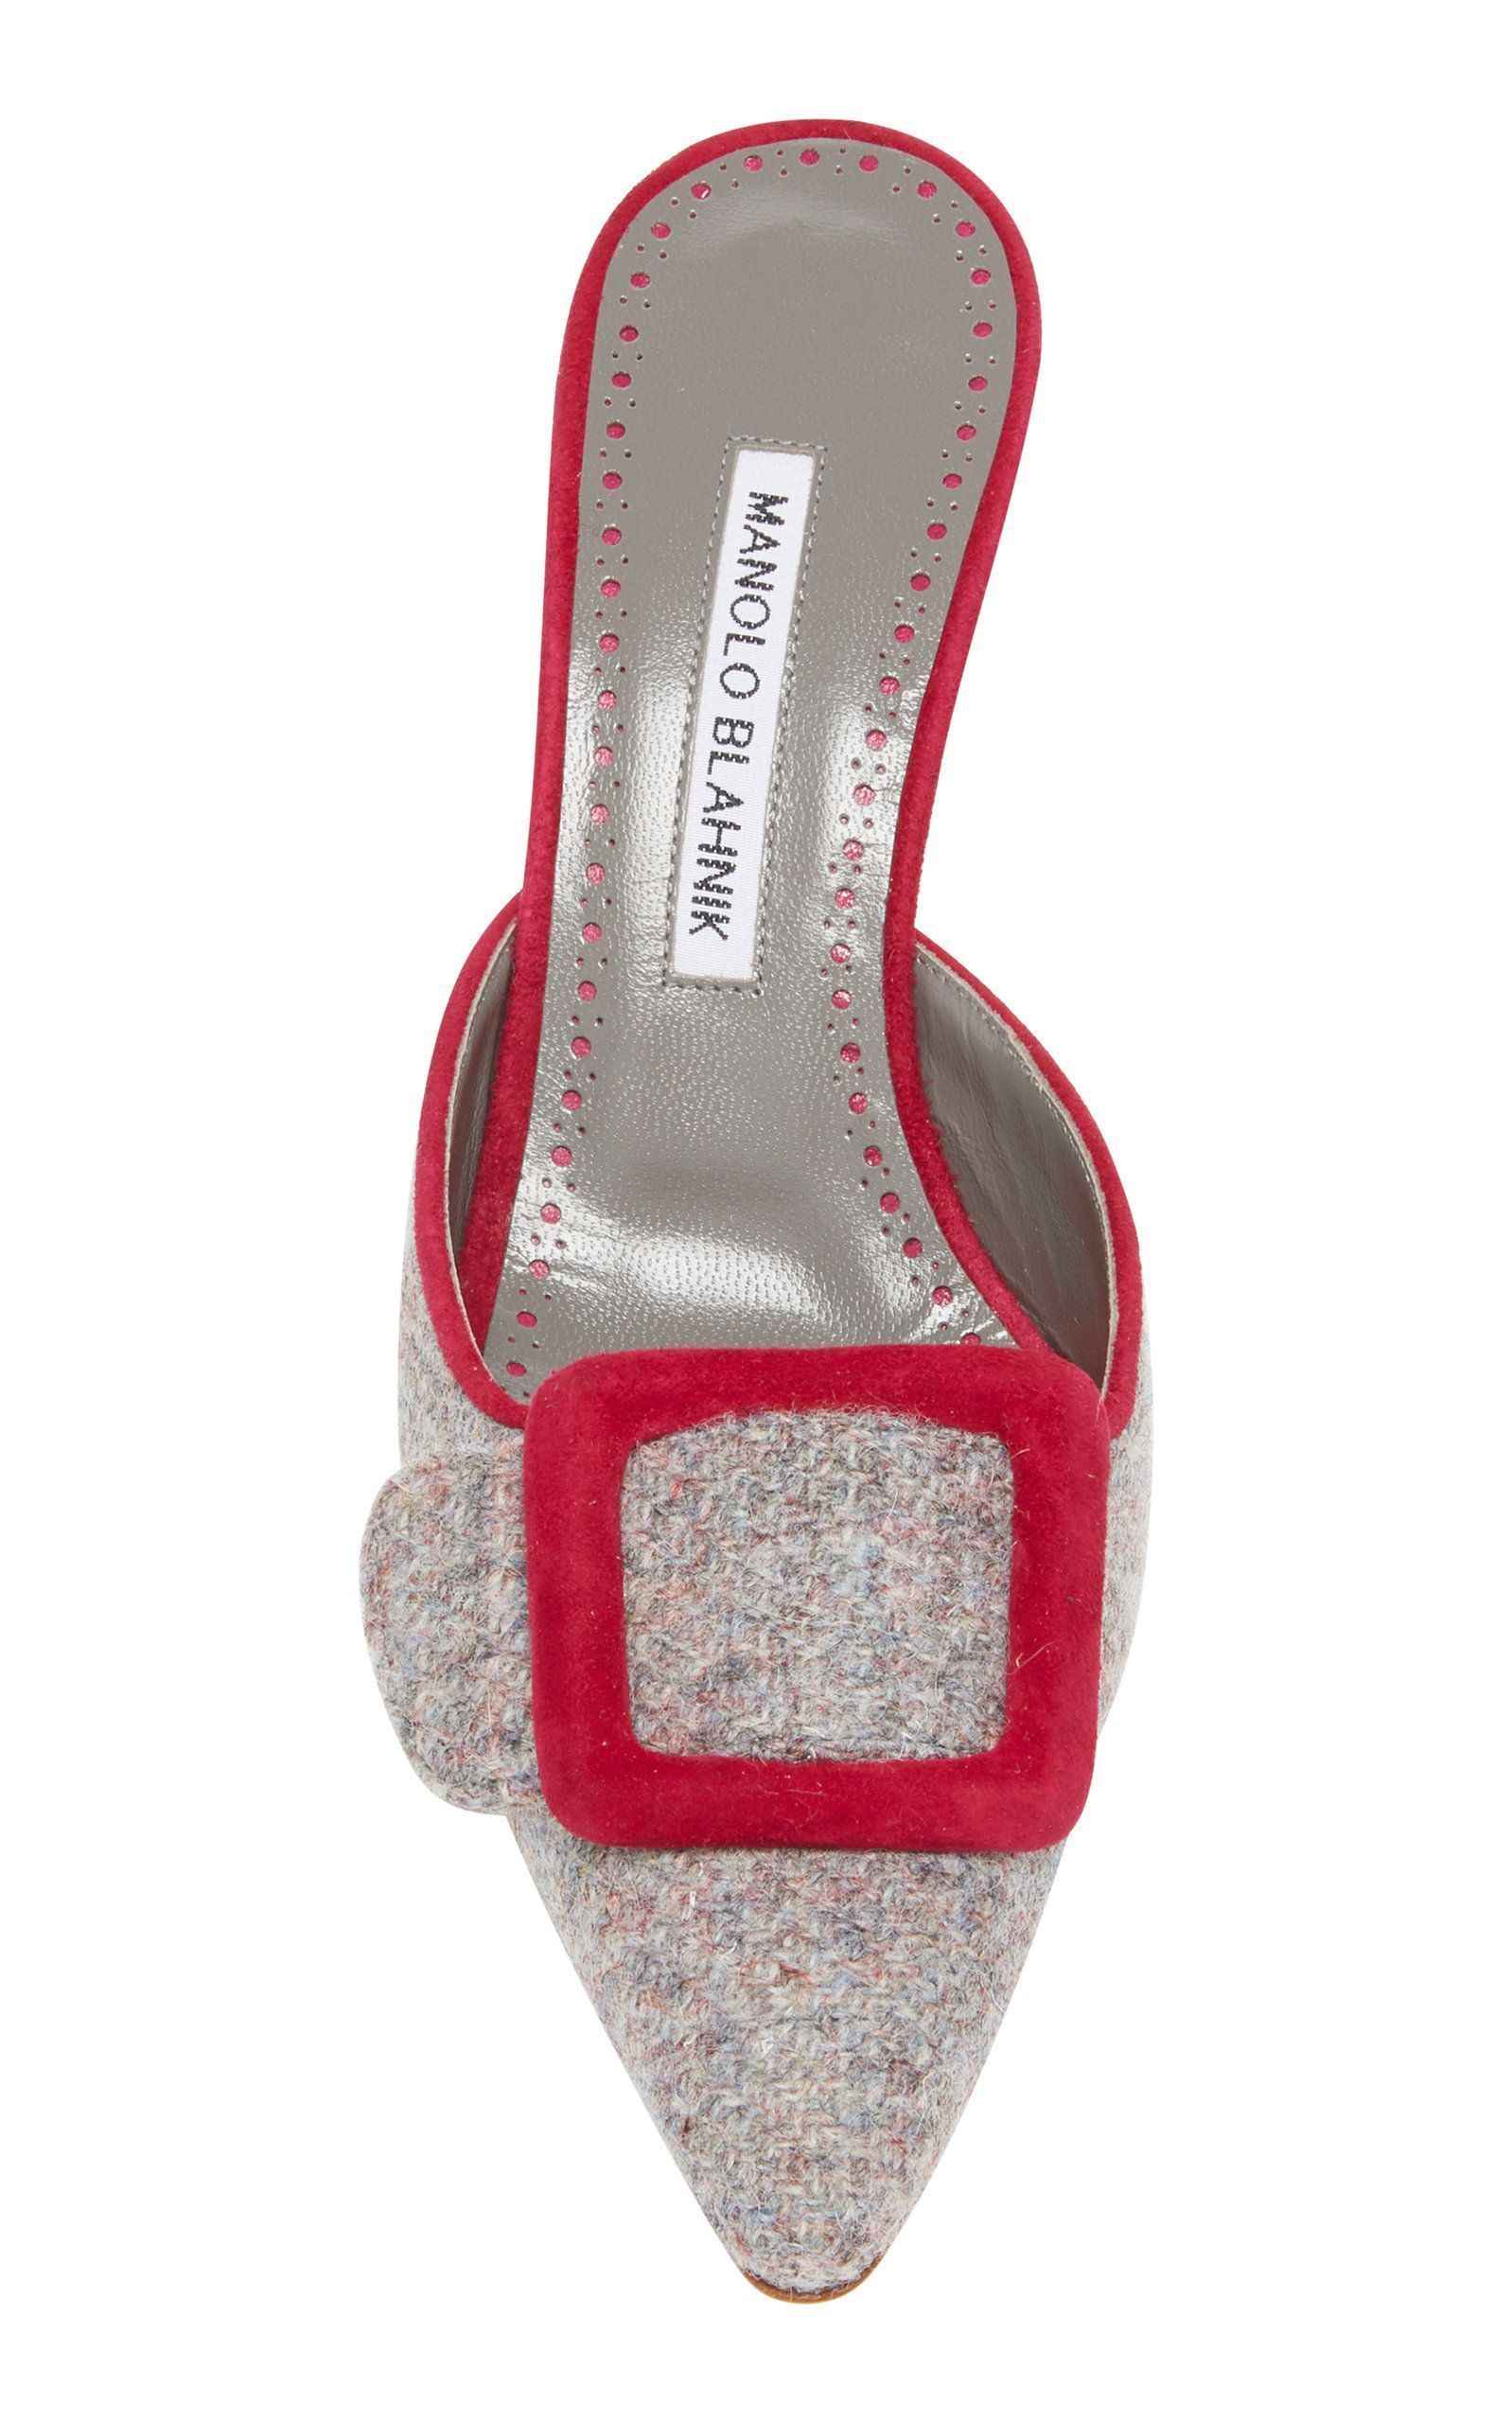 5ae3880689cf0 Manolo Blahnik Victorian Shoes, Mules Shoes, Heeled Mules, Shoes Sandals,  Sock Shoes